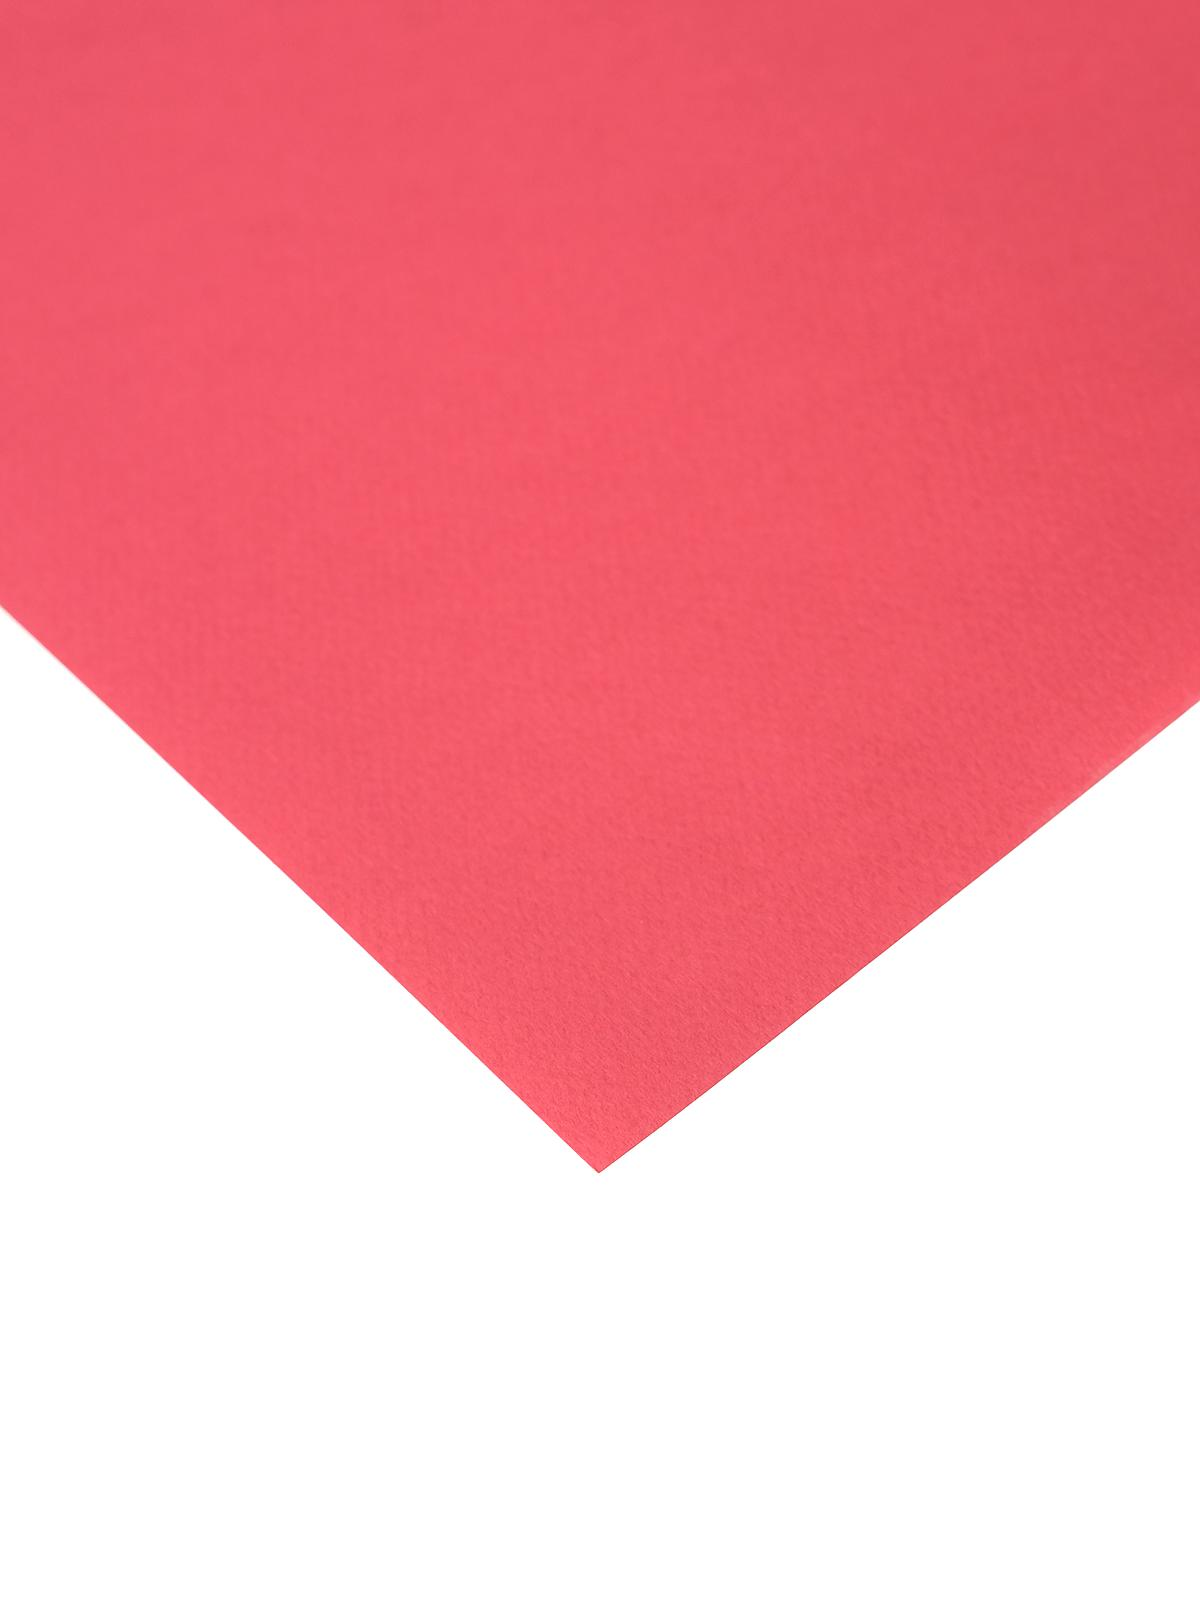 Mi-teintes Tinted Paper Red 8.5 In. X 11 In.